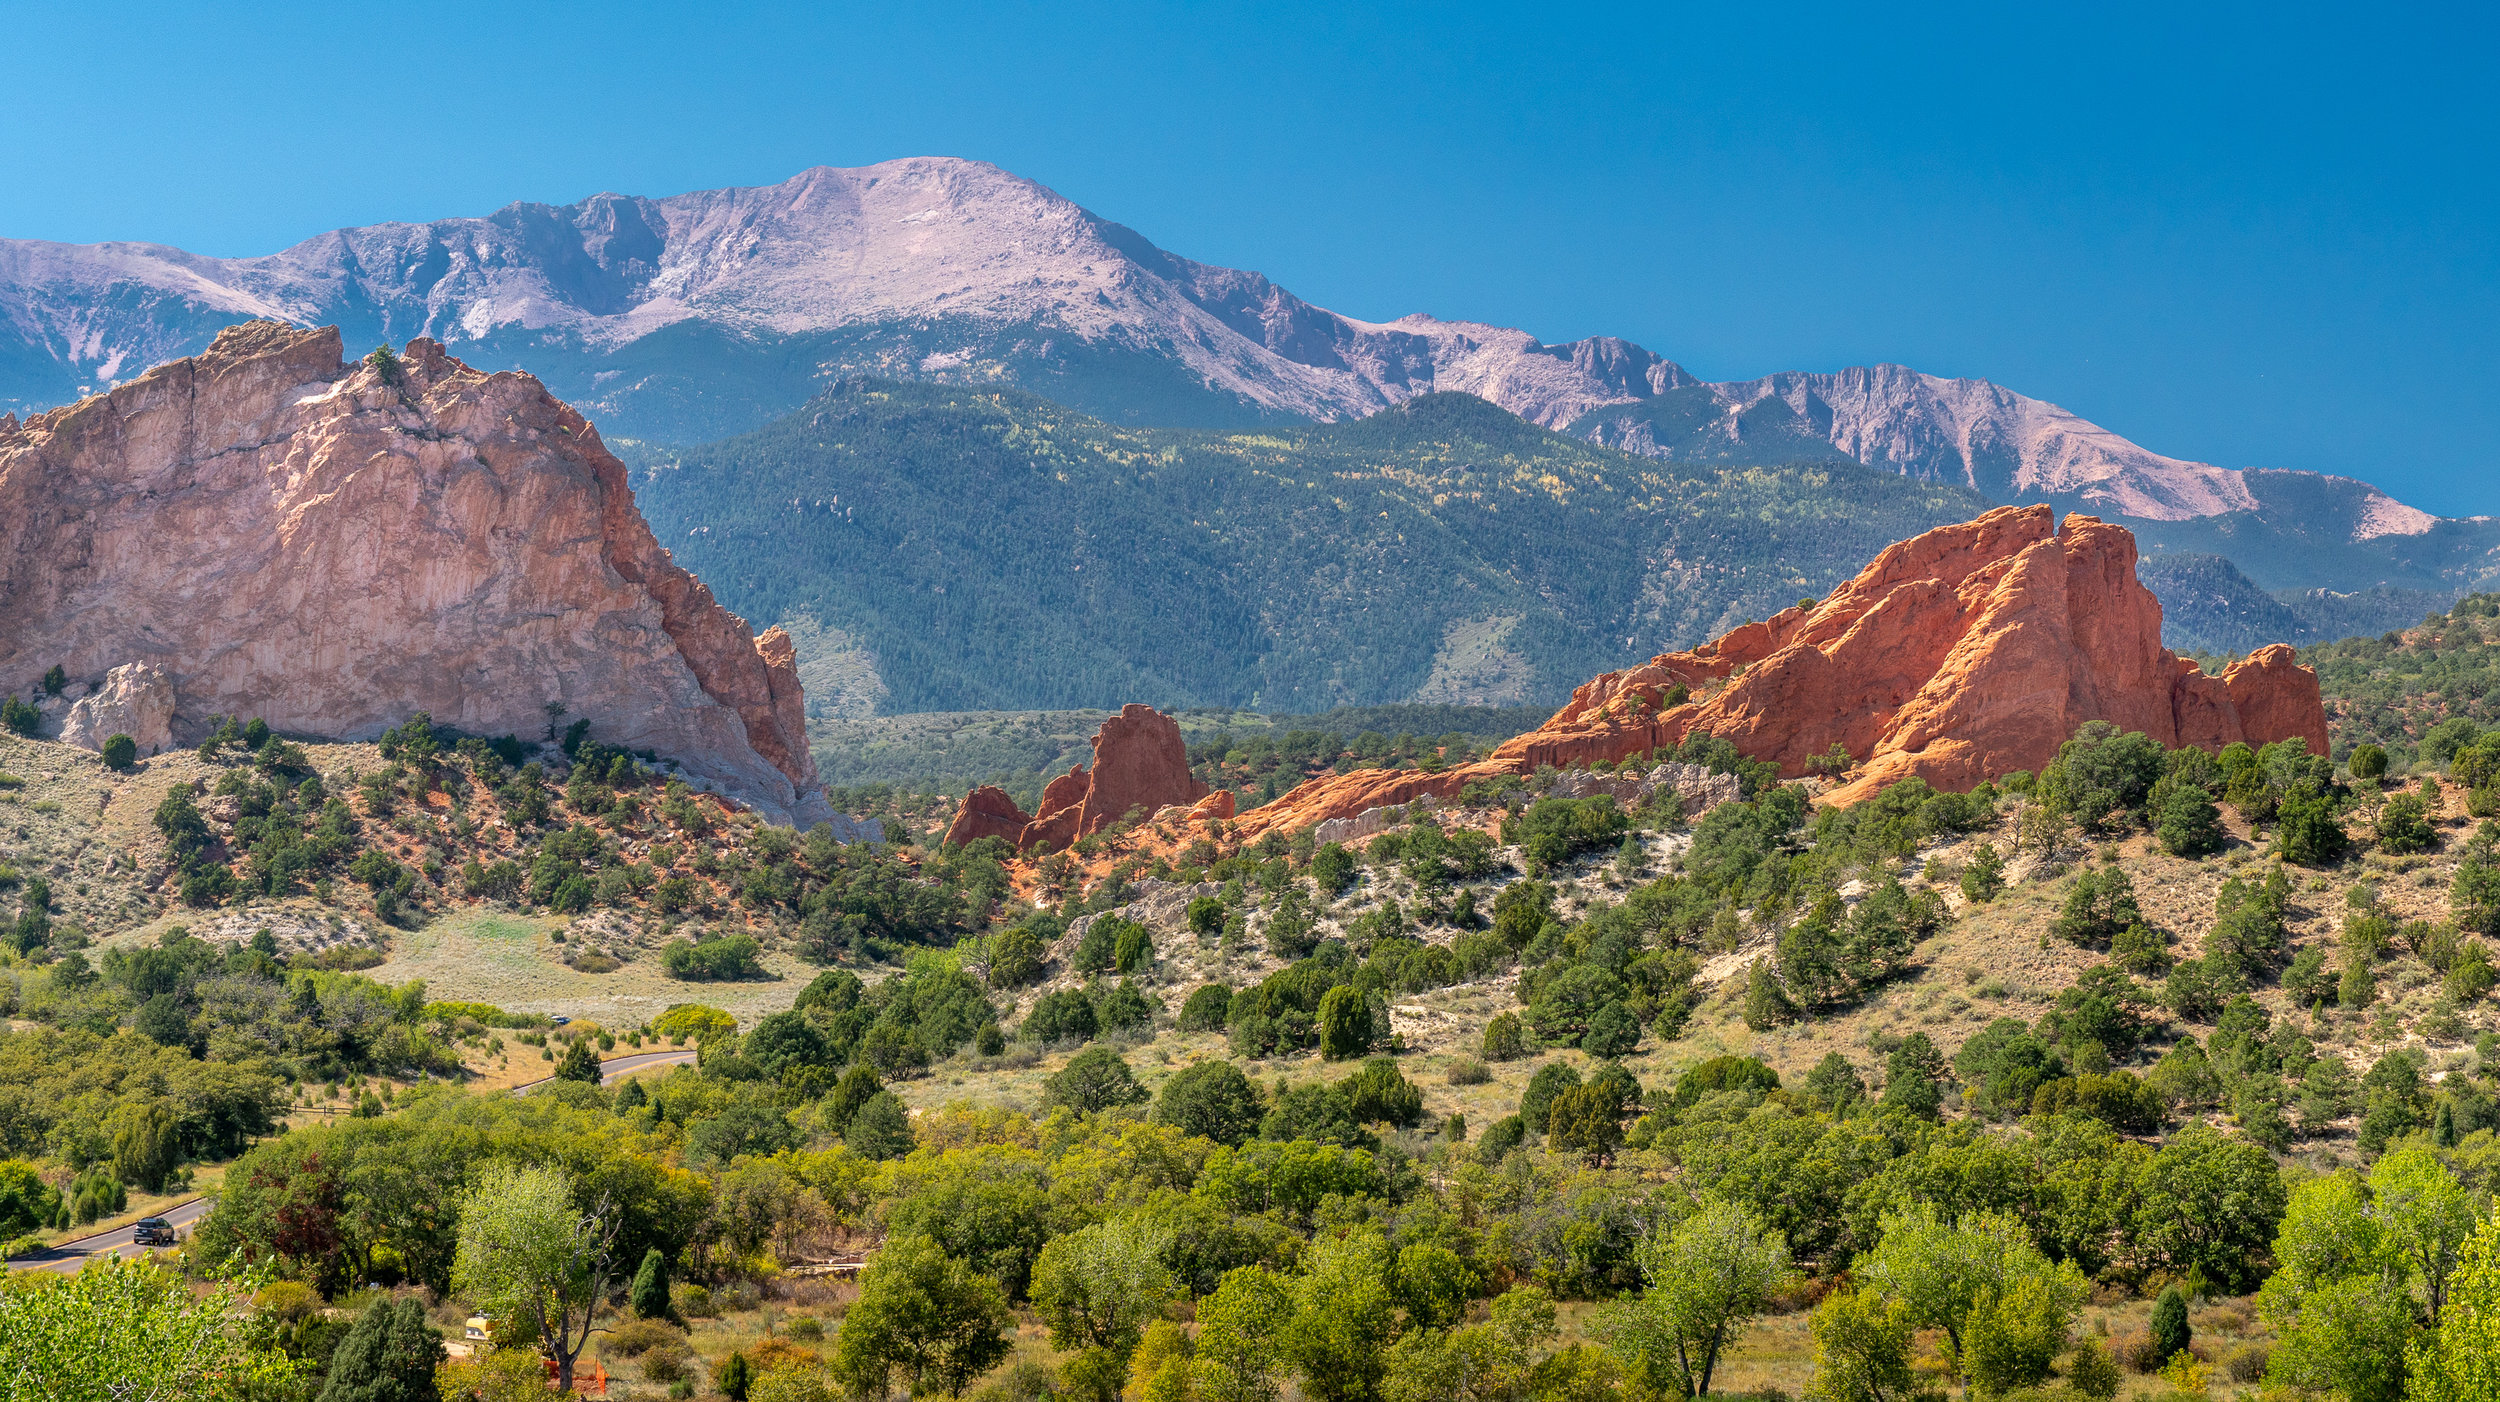 Garden of the Gods, 1.5 hours south of Denver, Colorado